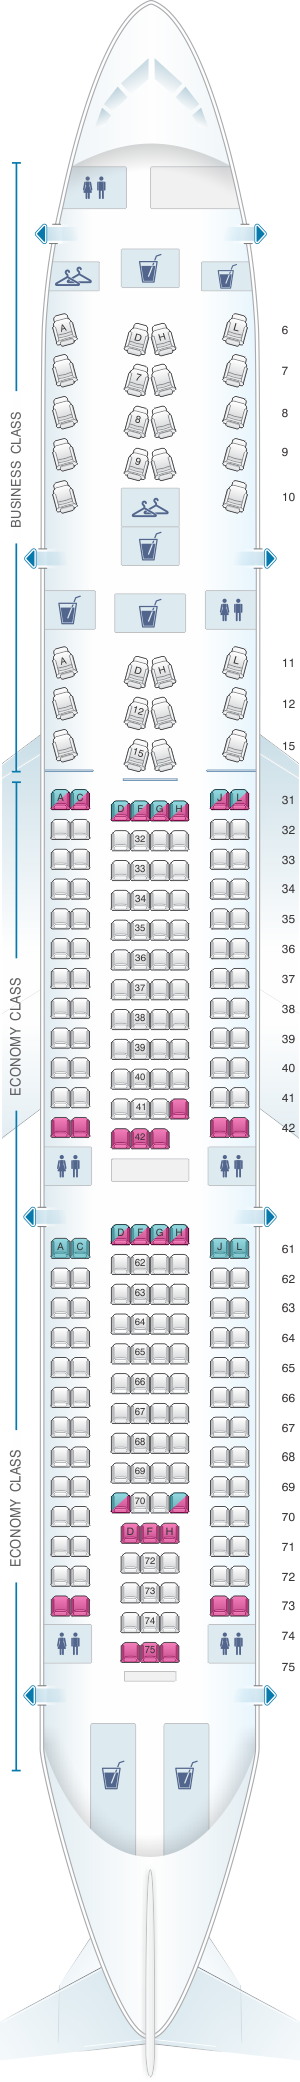 Seat map for China Eastern Airlines Airbus A330 200 232PAX V2